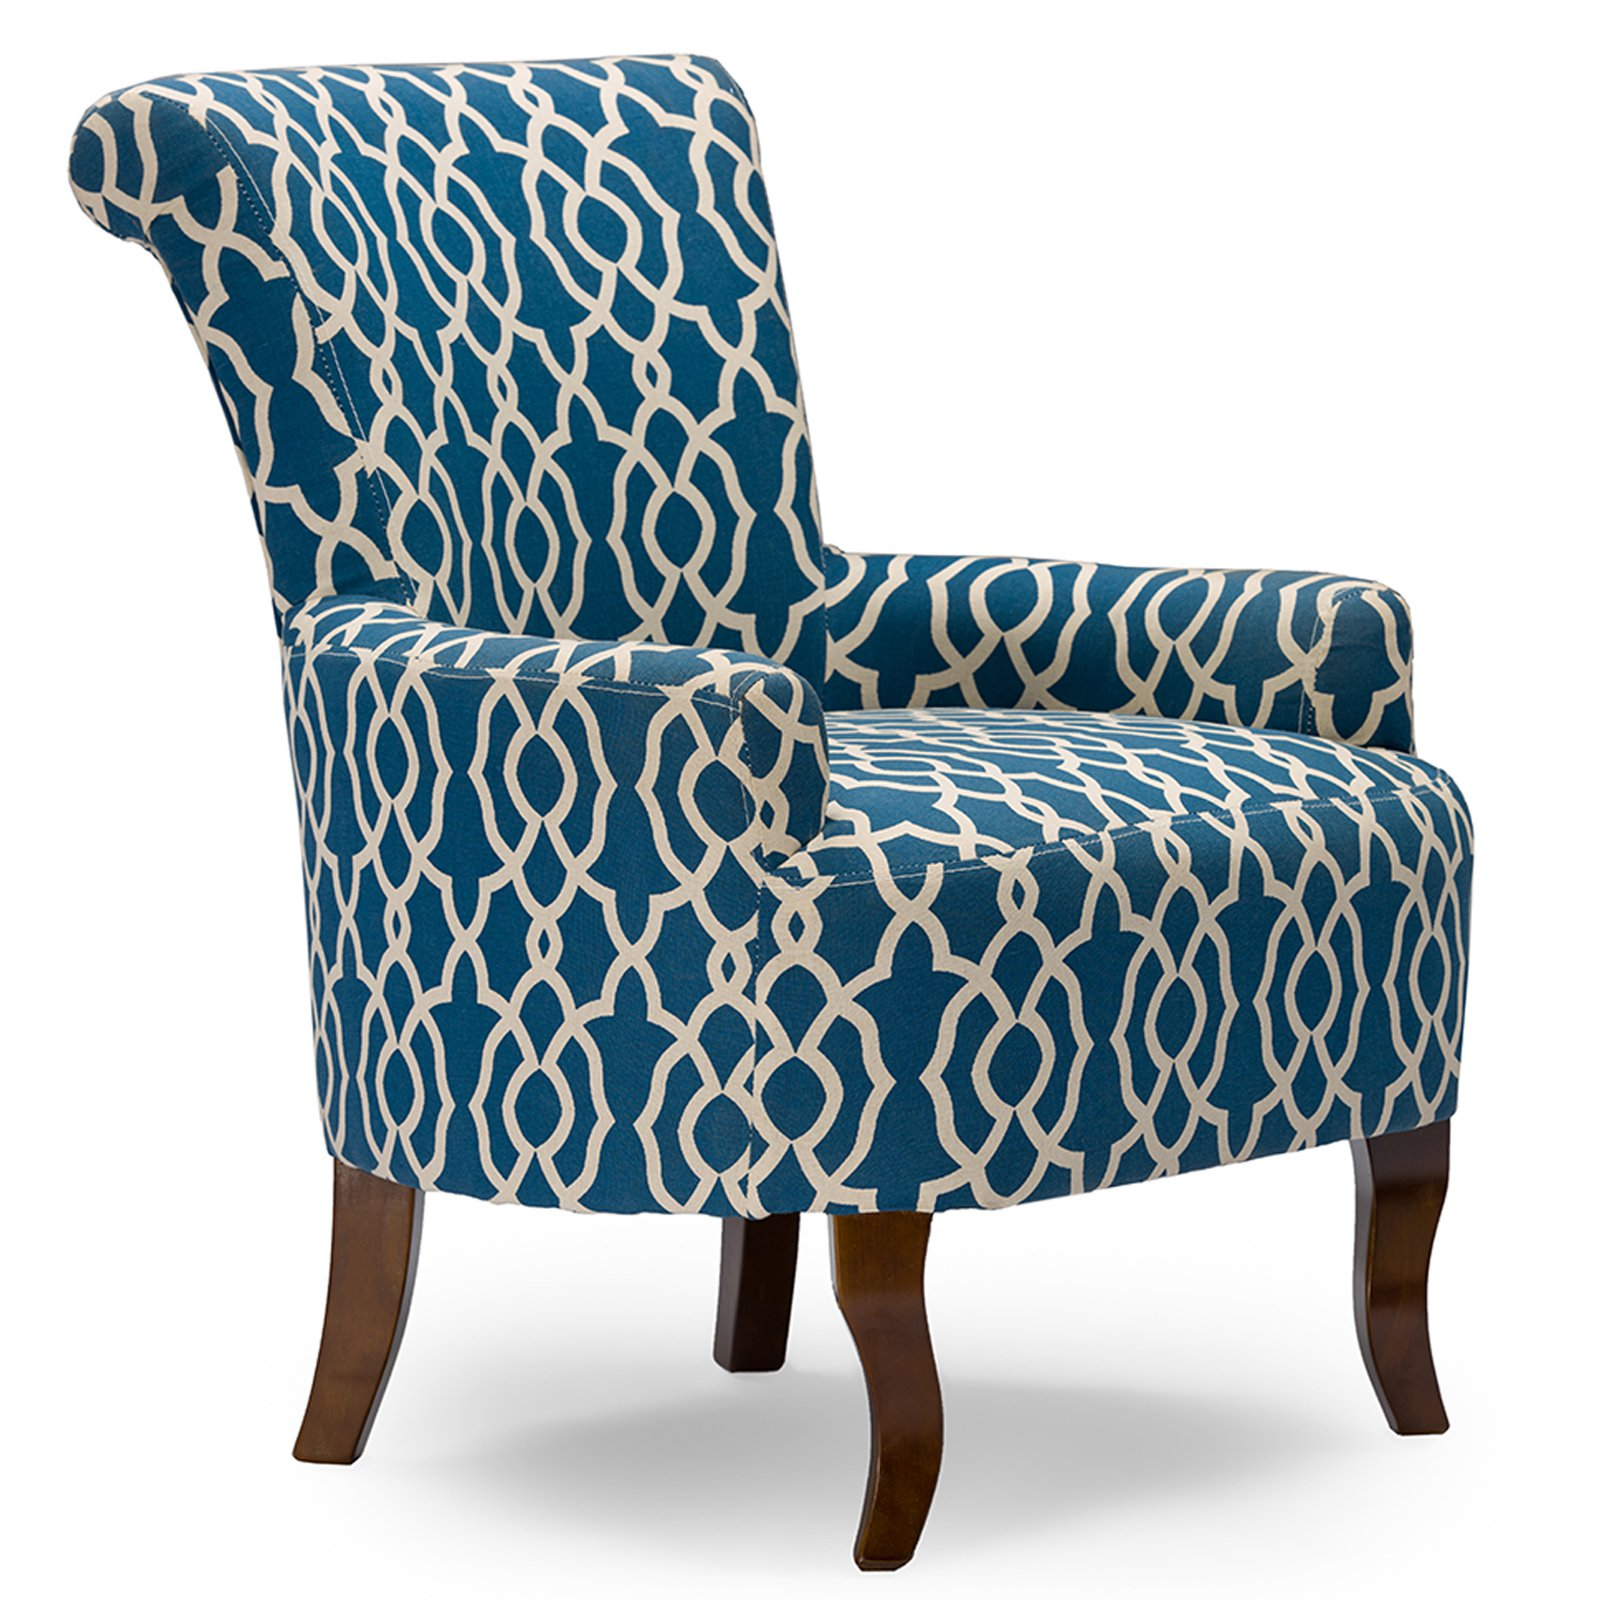 Baxton Studio Dixie Contemporary Fabric Armchair, Navy Blue Patterned Fabric by Wholesale Interiors